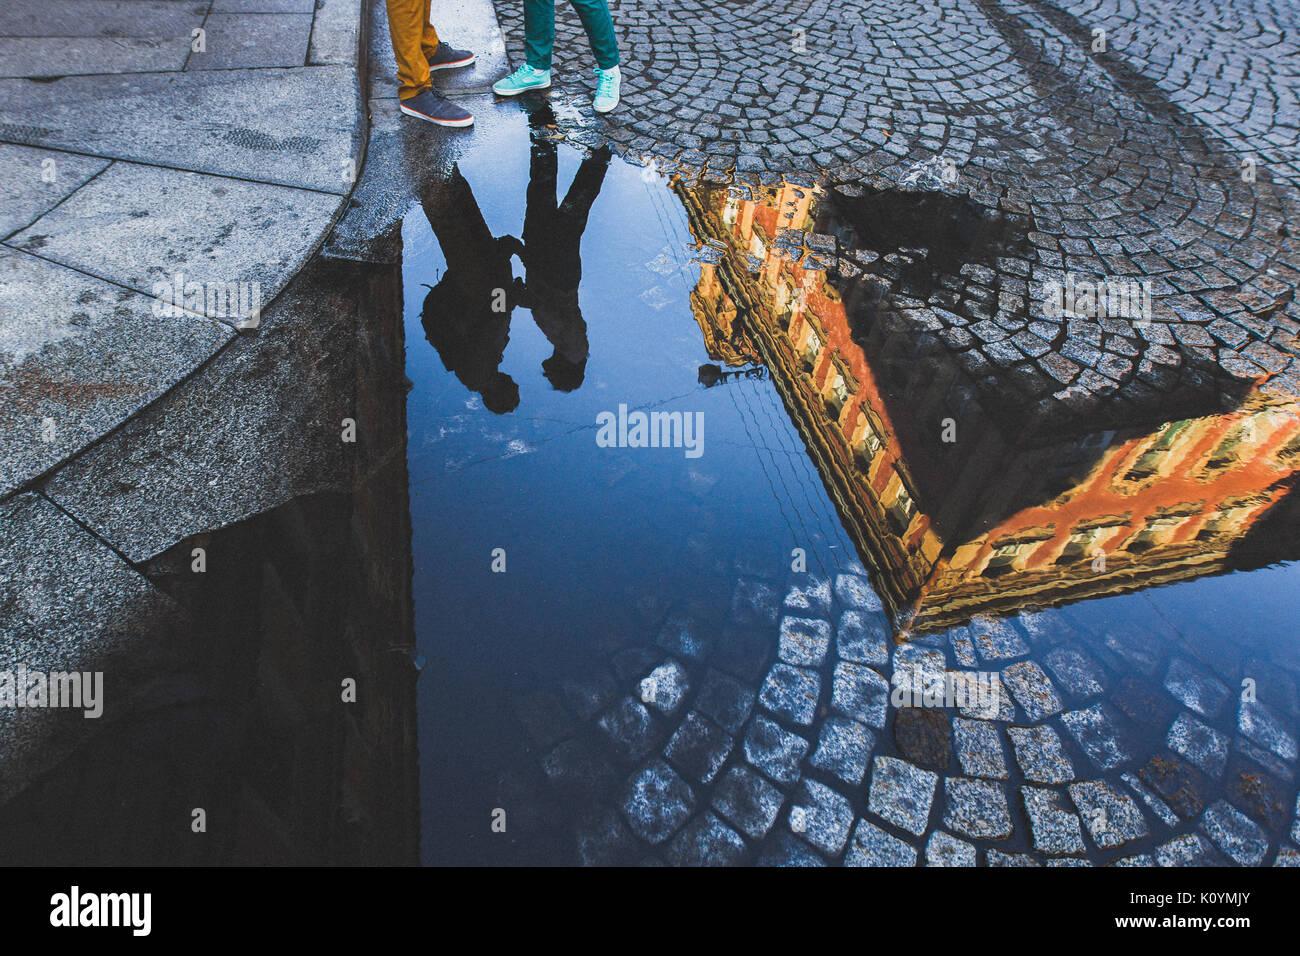 Silhouette hugging guy and girl in reflection in puddle on a street. Saint-Petersburg Love - Stock Image